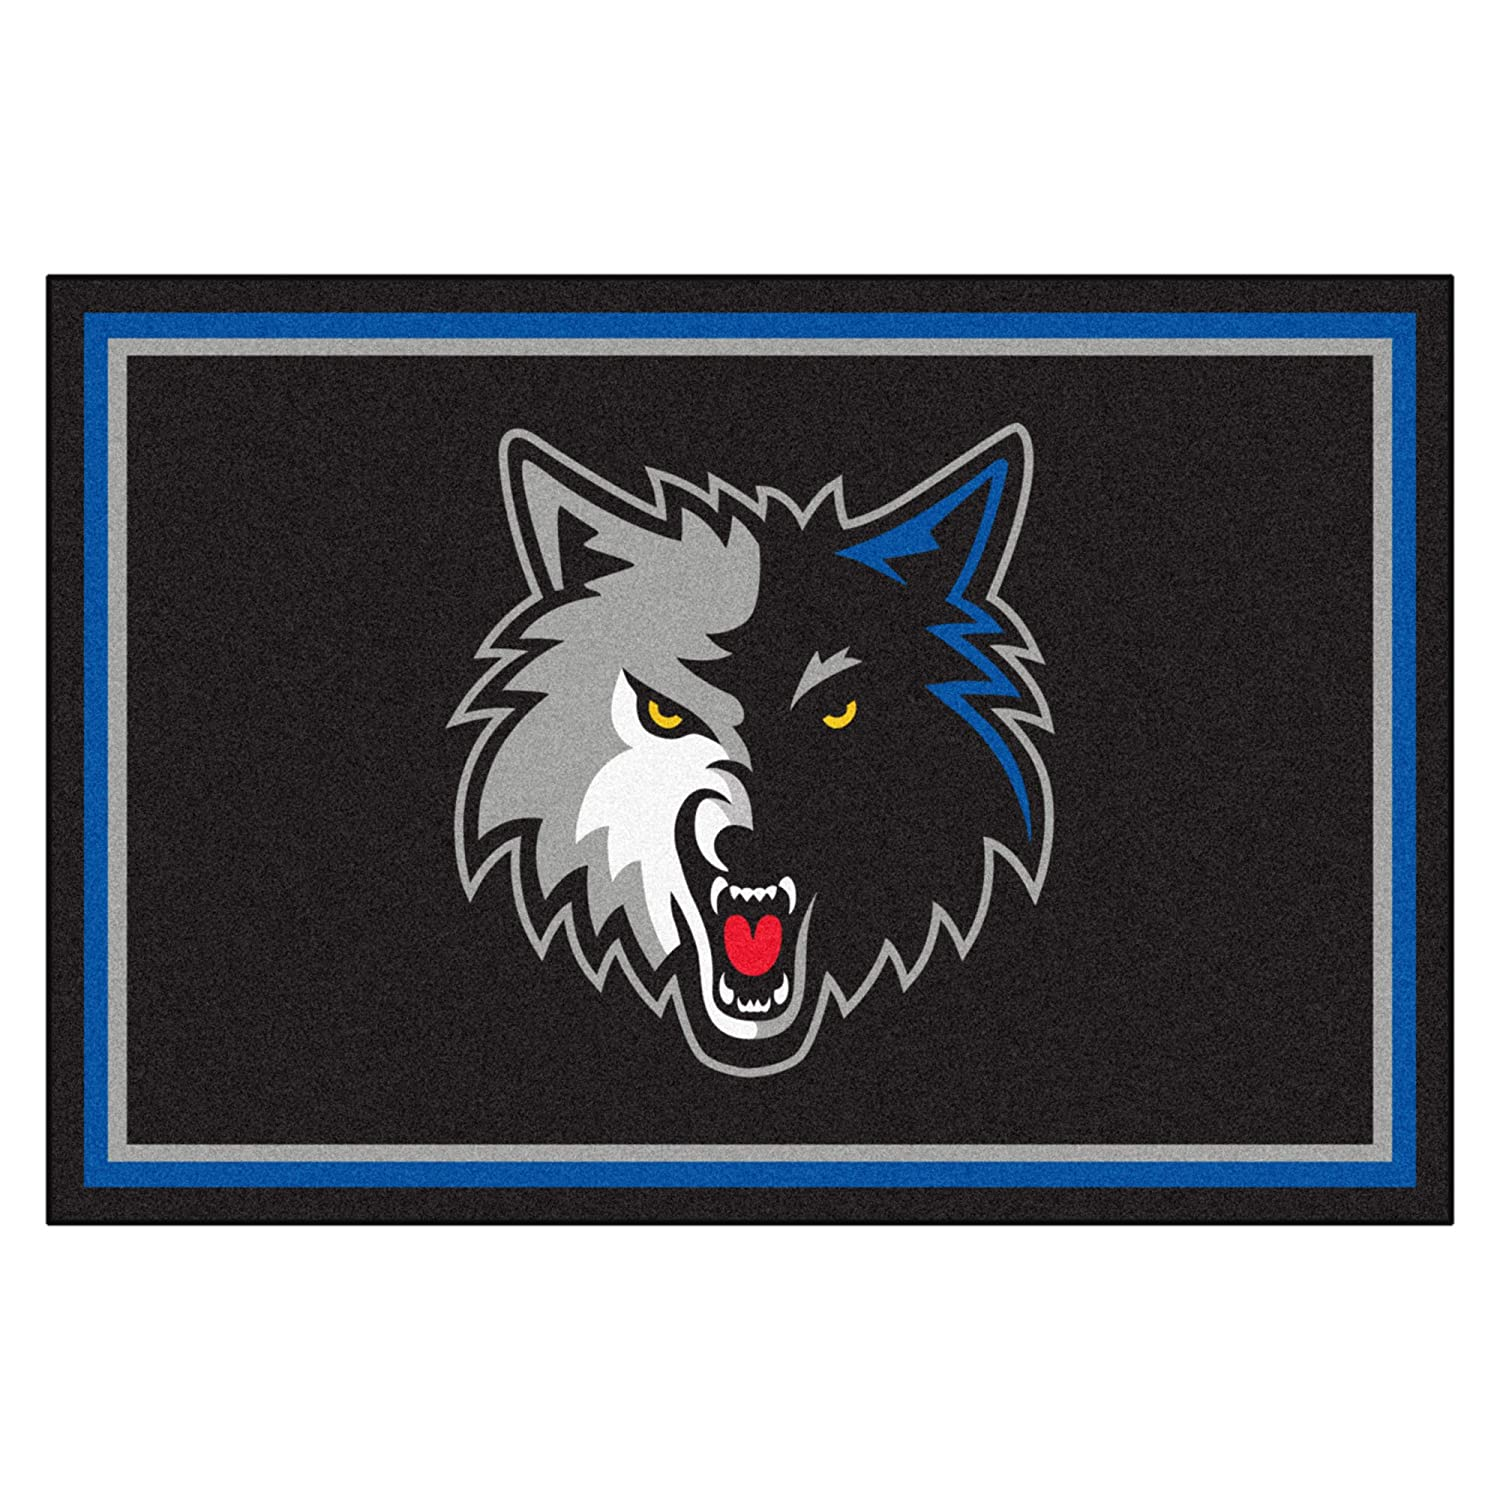 FANMATS NBA Minnesota Timberwolves Nylon Face 5X8 Plush Rug